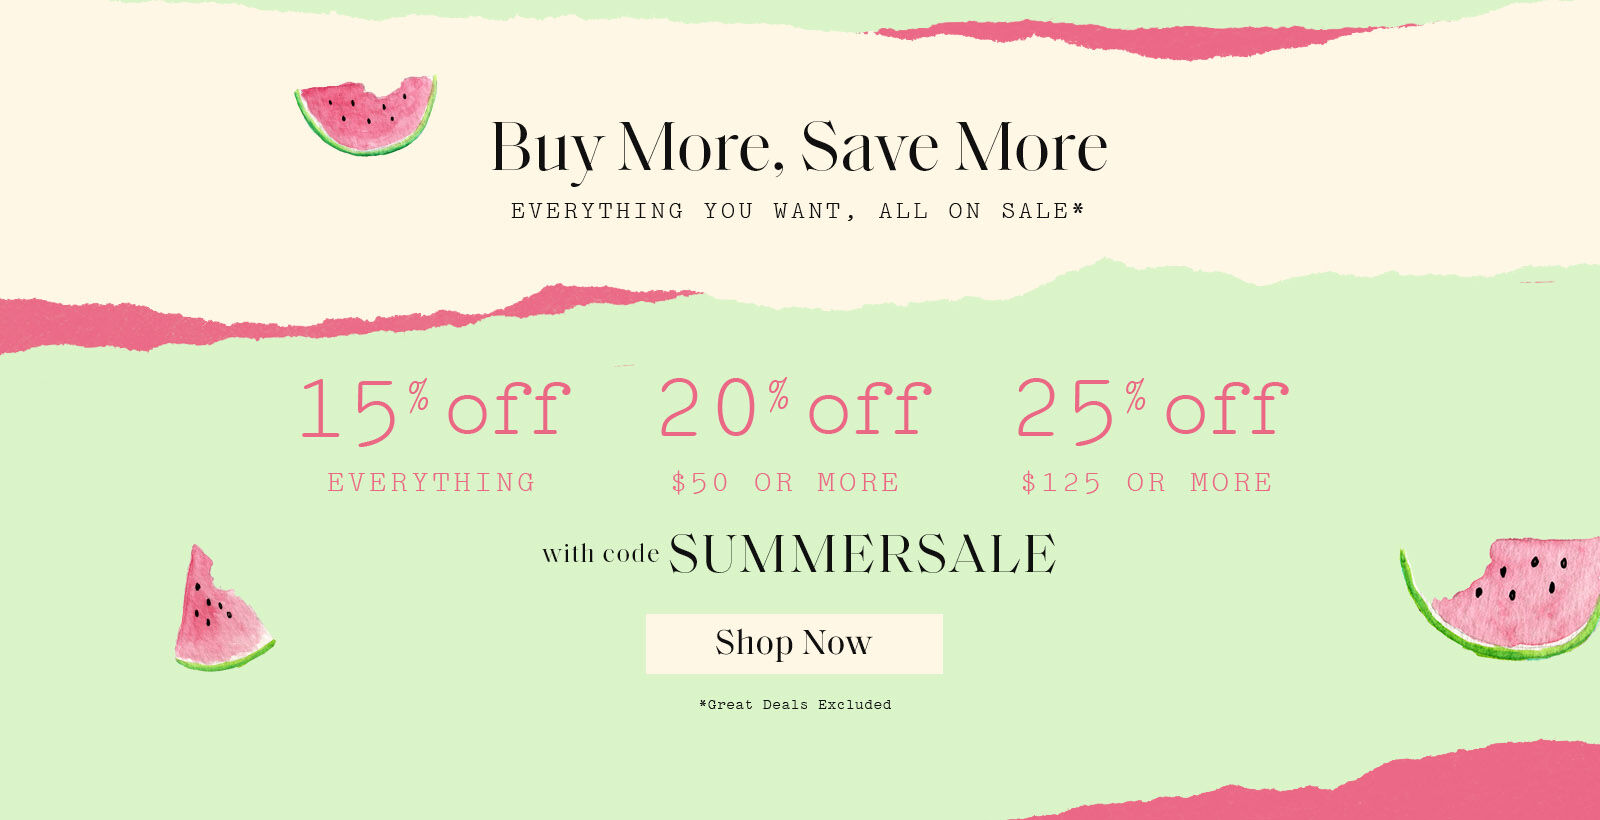 Buy More Save More with code SUMMERSALE